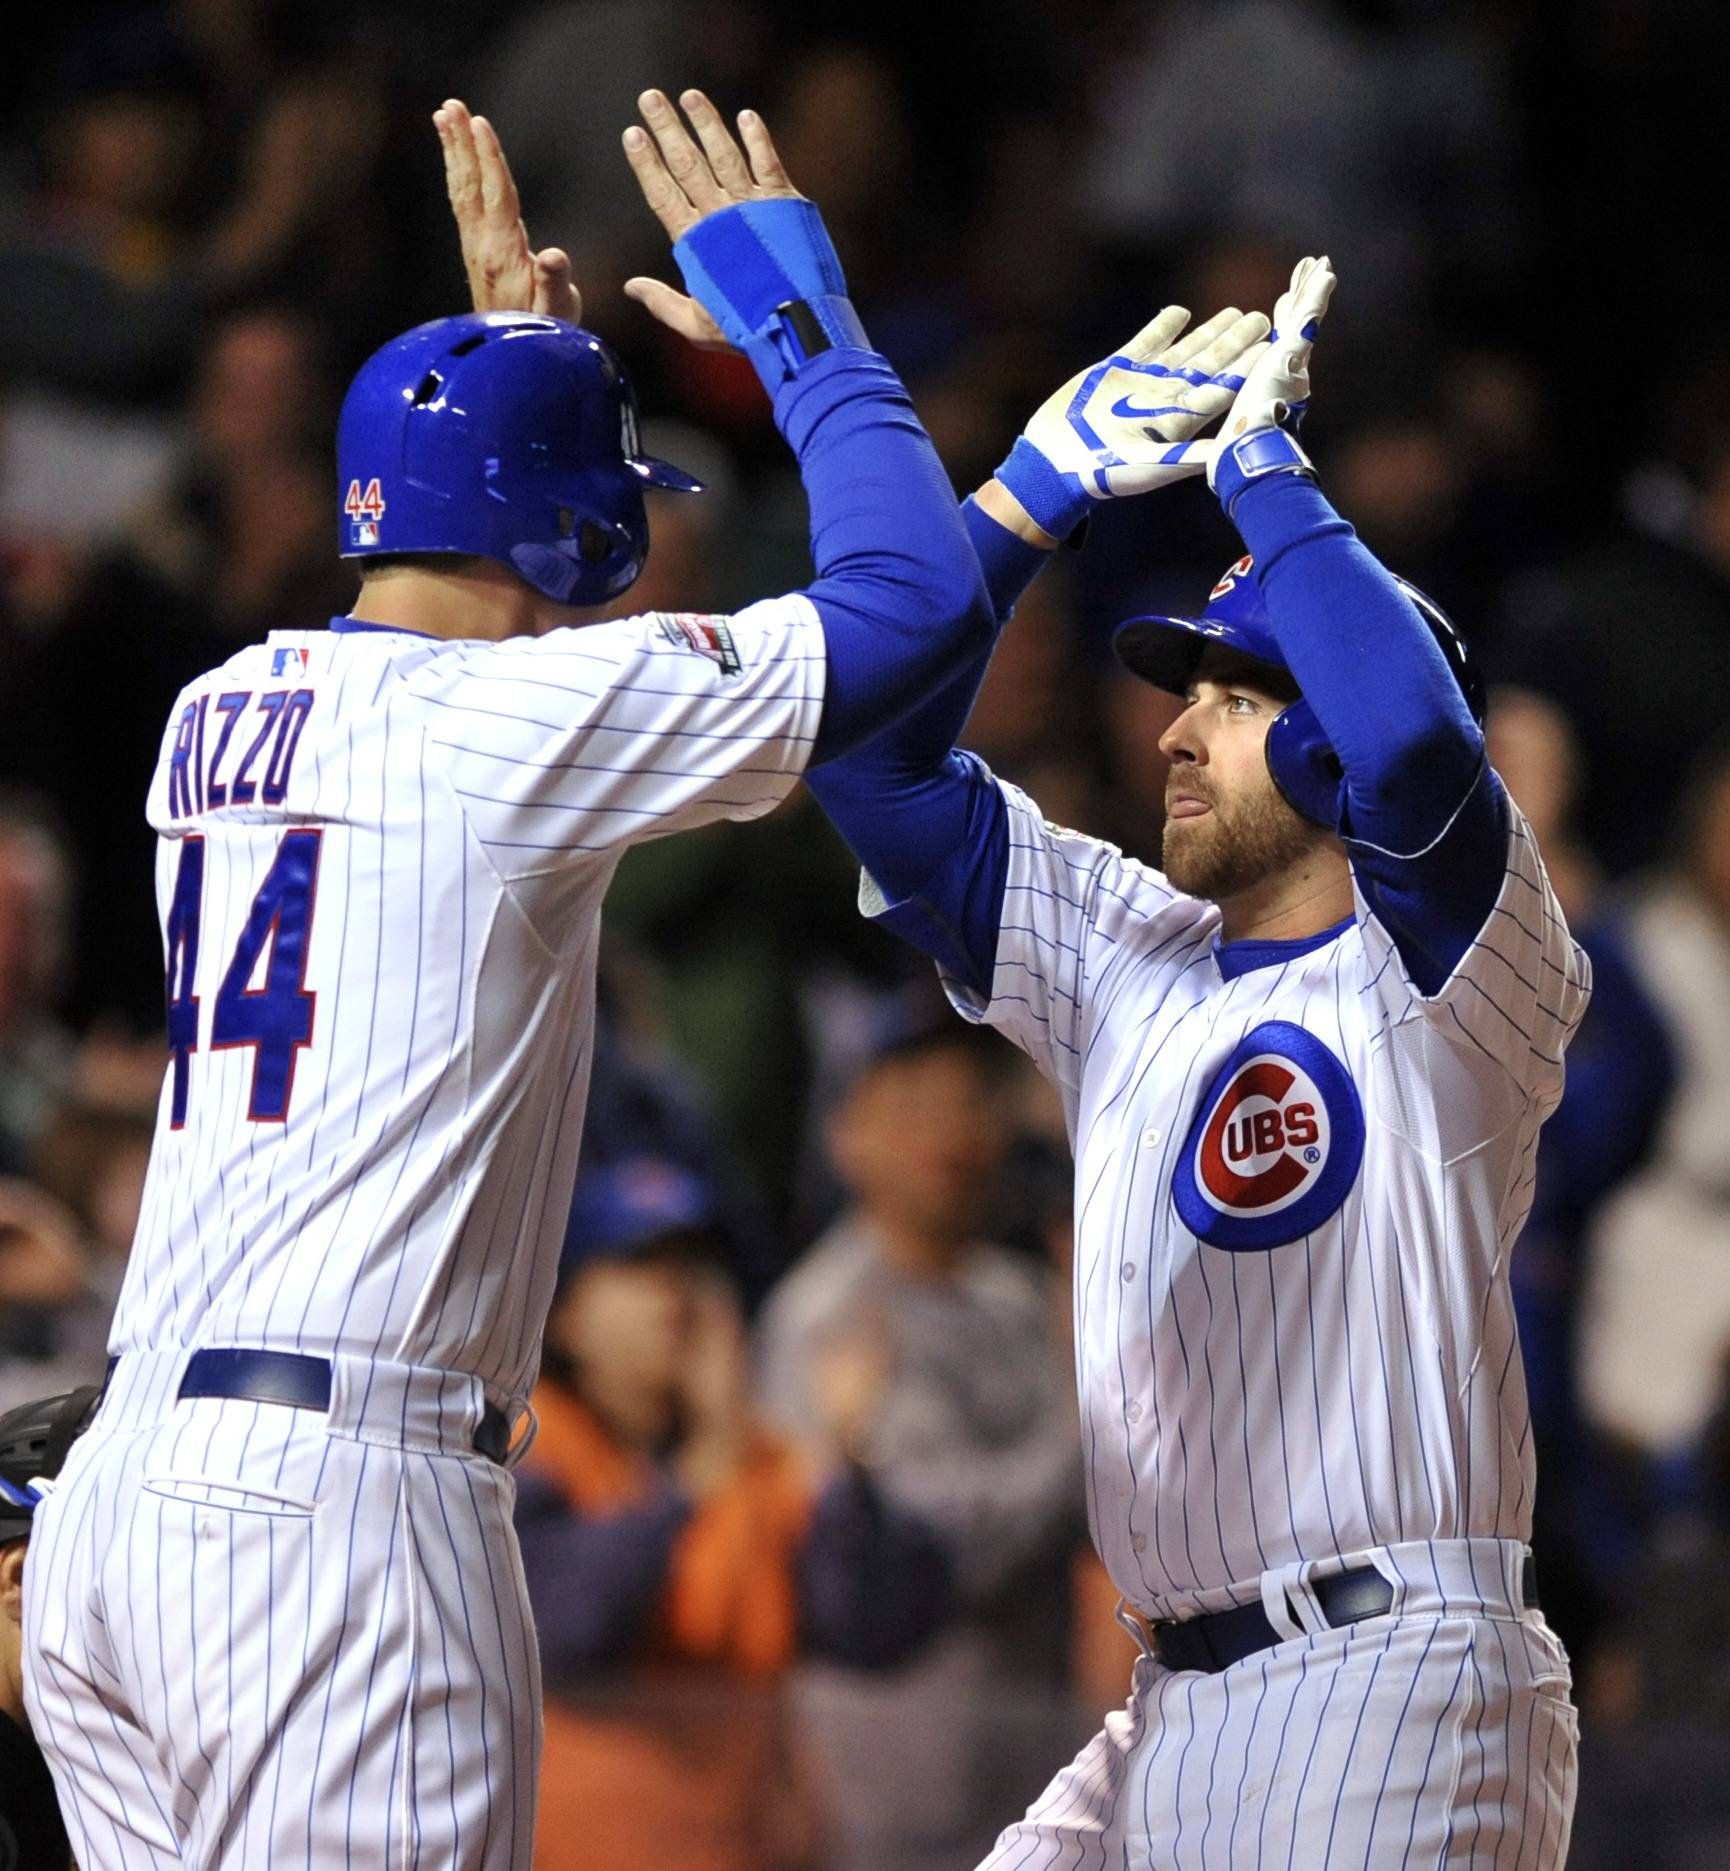 Chicago Cubs' Mike Olt right, celebrates with Anthony Rizzo at home plate after hitting a two-run home run during the fifth inning of a baseball game against the Pittsburgh Pirates in Chicago, Wednesday, April 9, 2014. (AP Photo/Paul Beaty)